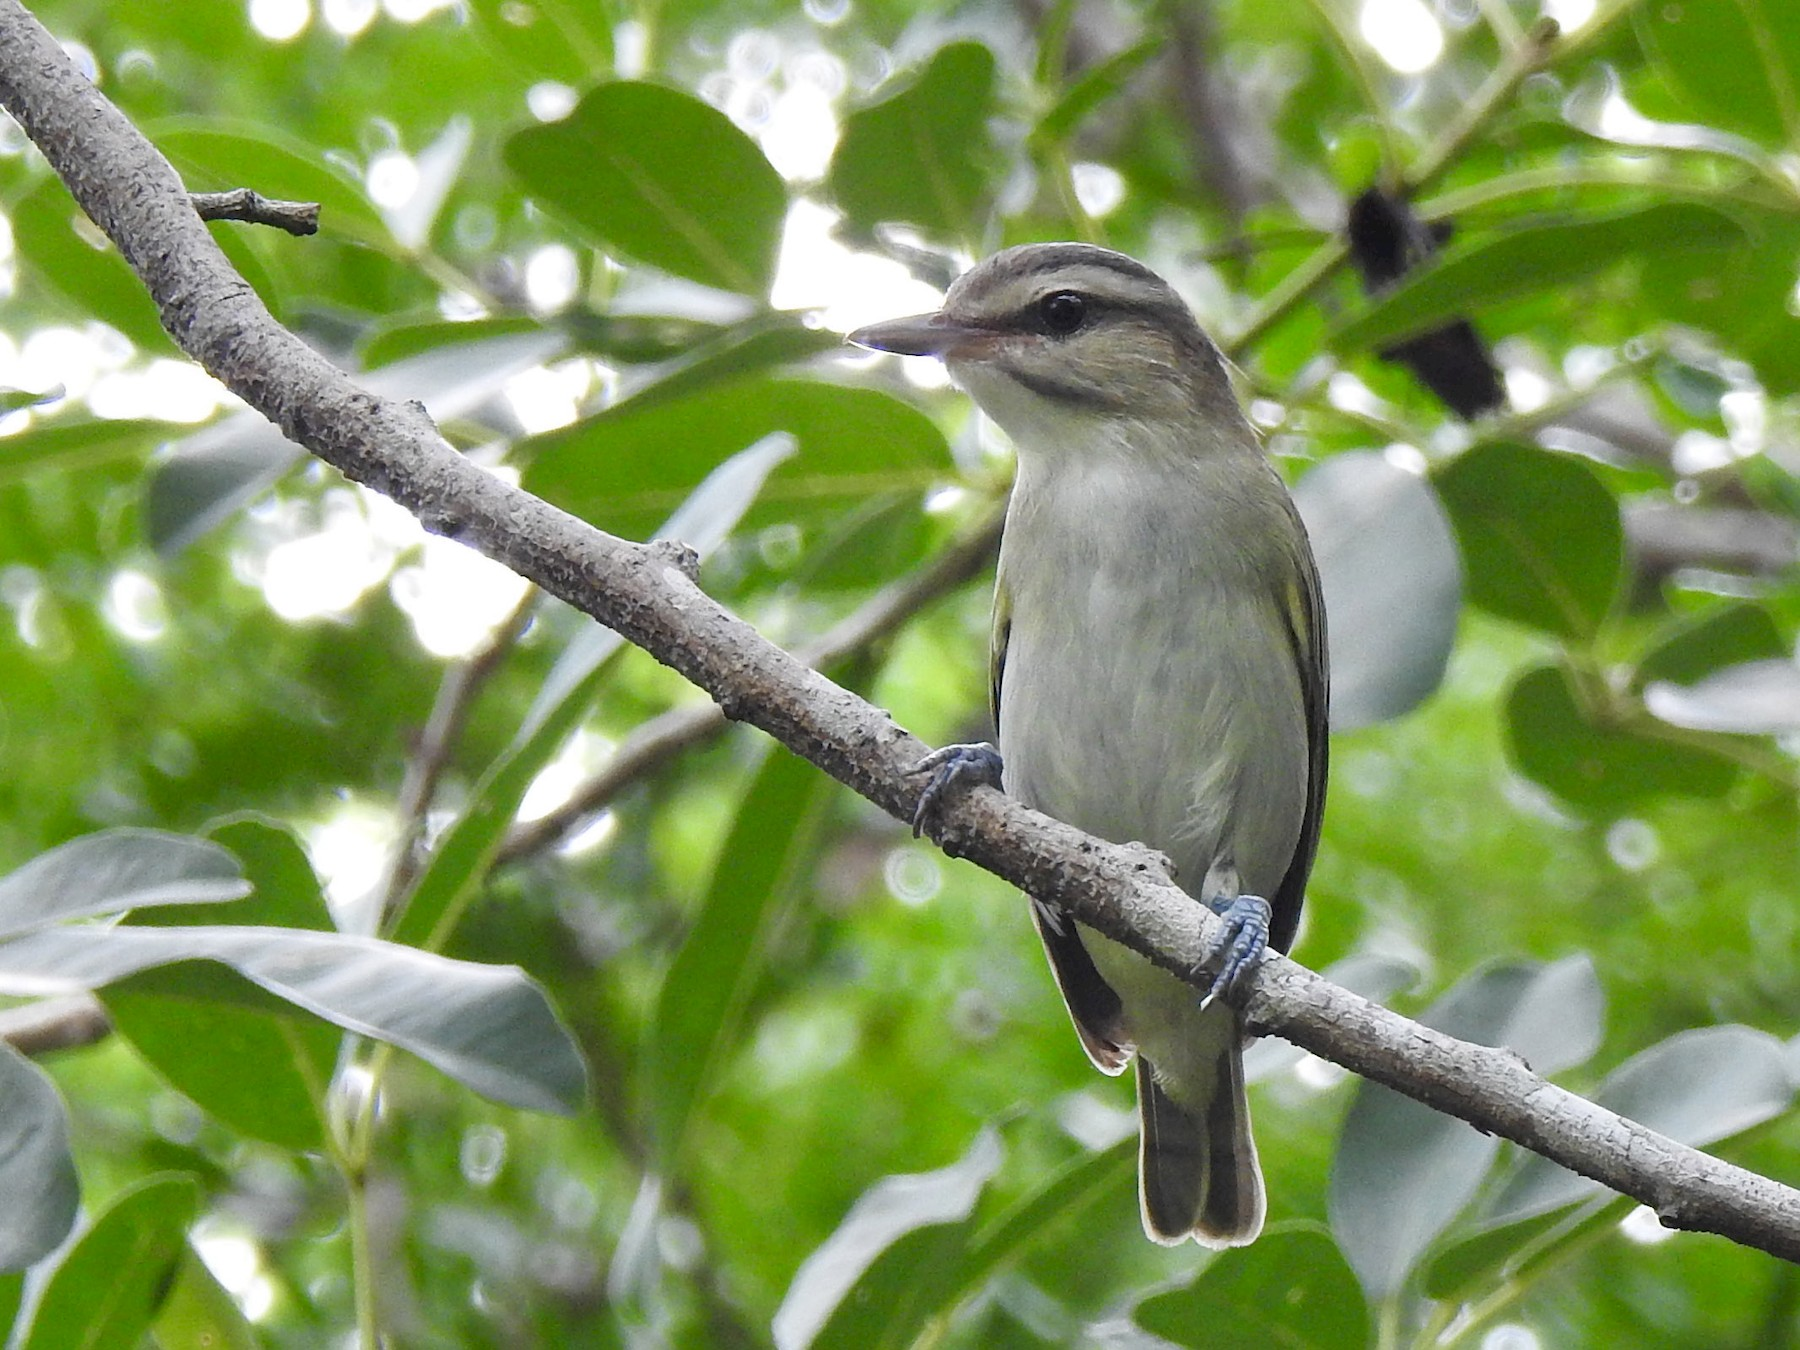 Black-whiskered Vireo - Linda J. Barry